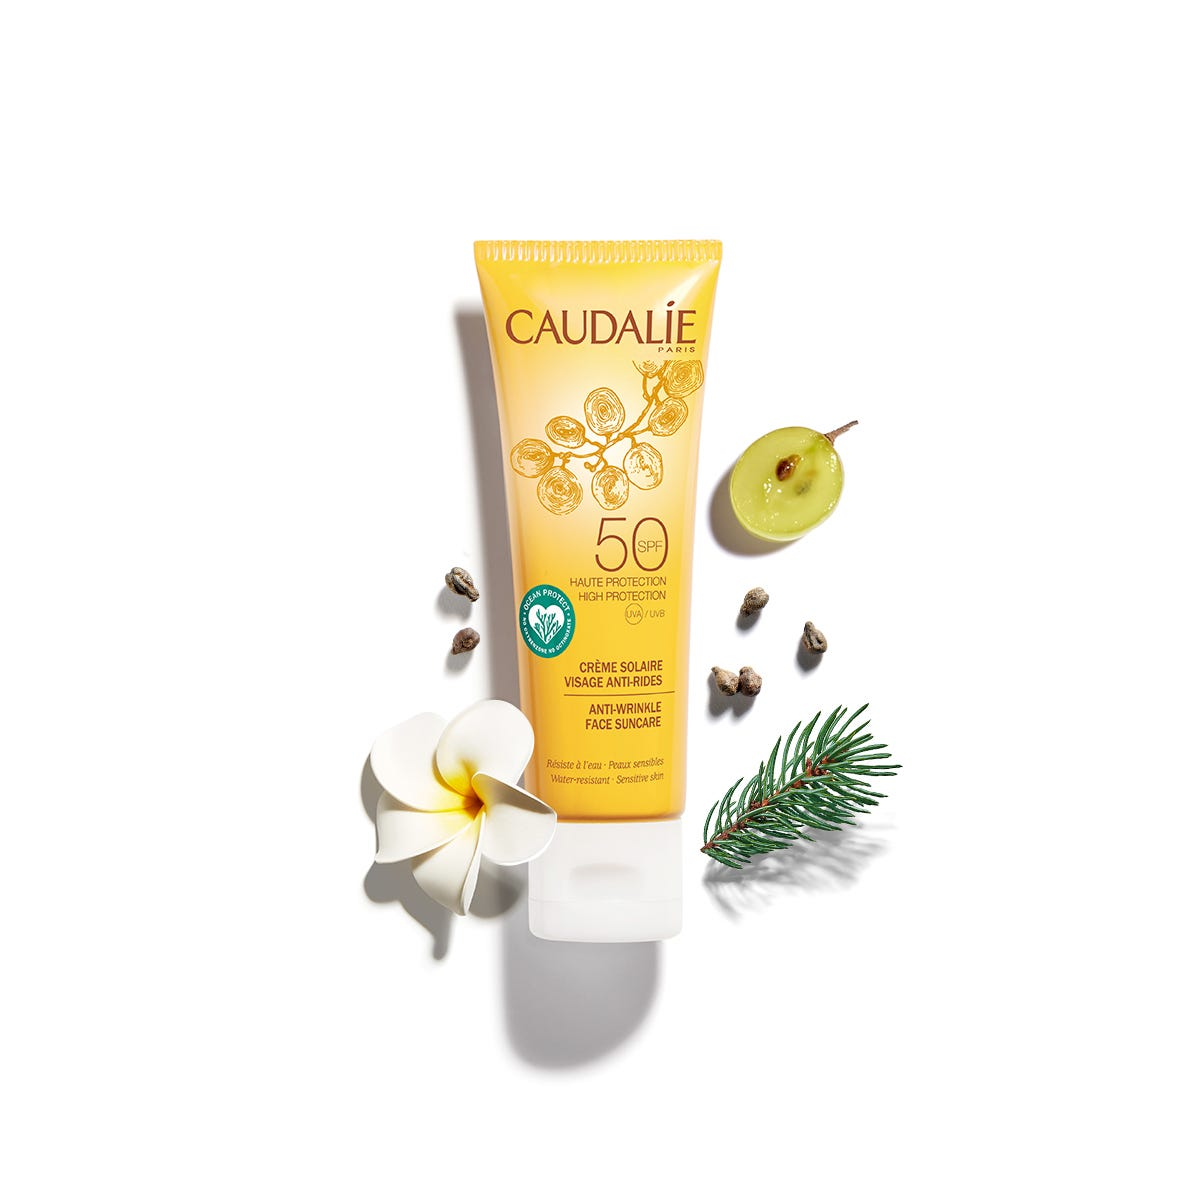 CAUDALIE Anti-Wrinkle Suncream SPF50